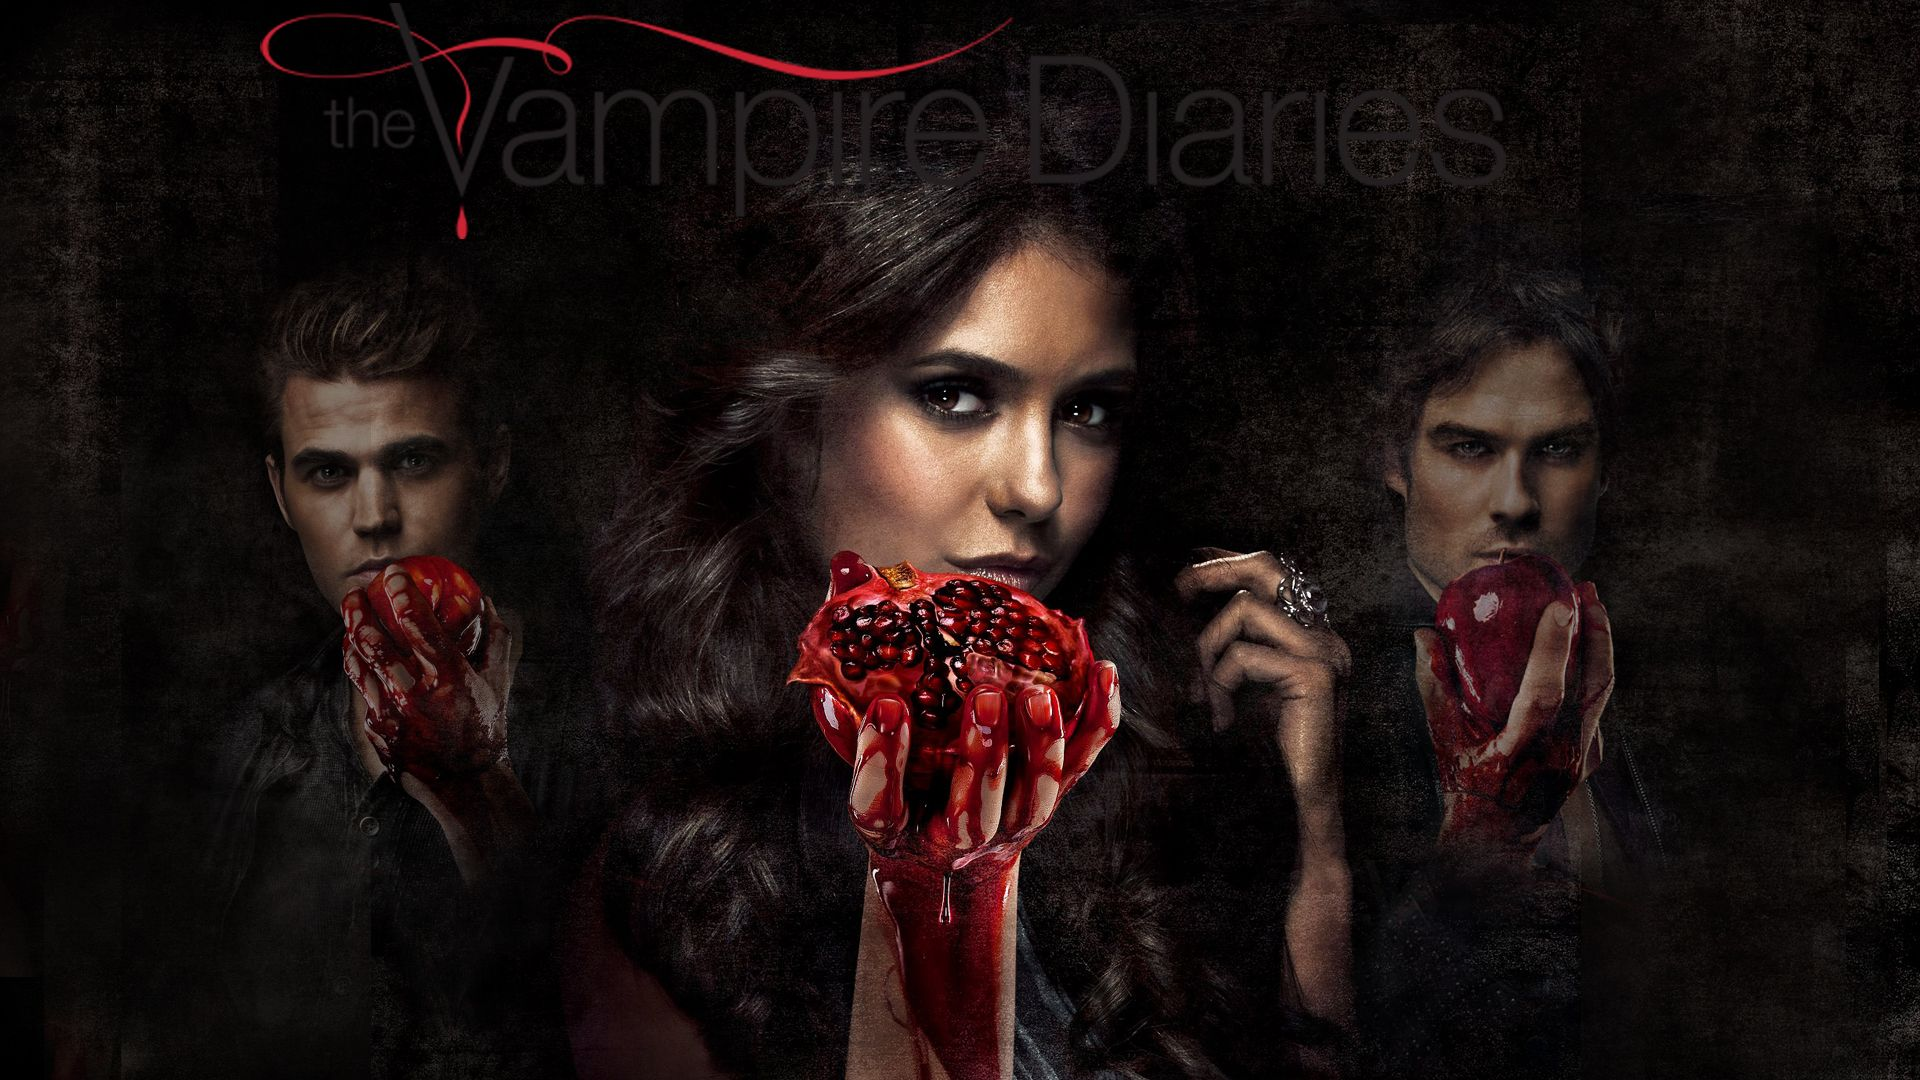 The Vampire Diaries Wallpaper - QyGjxZ